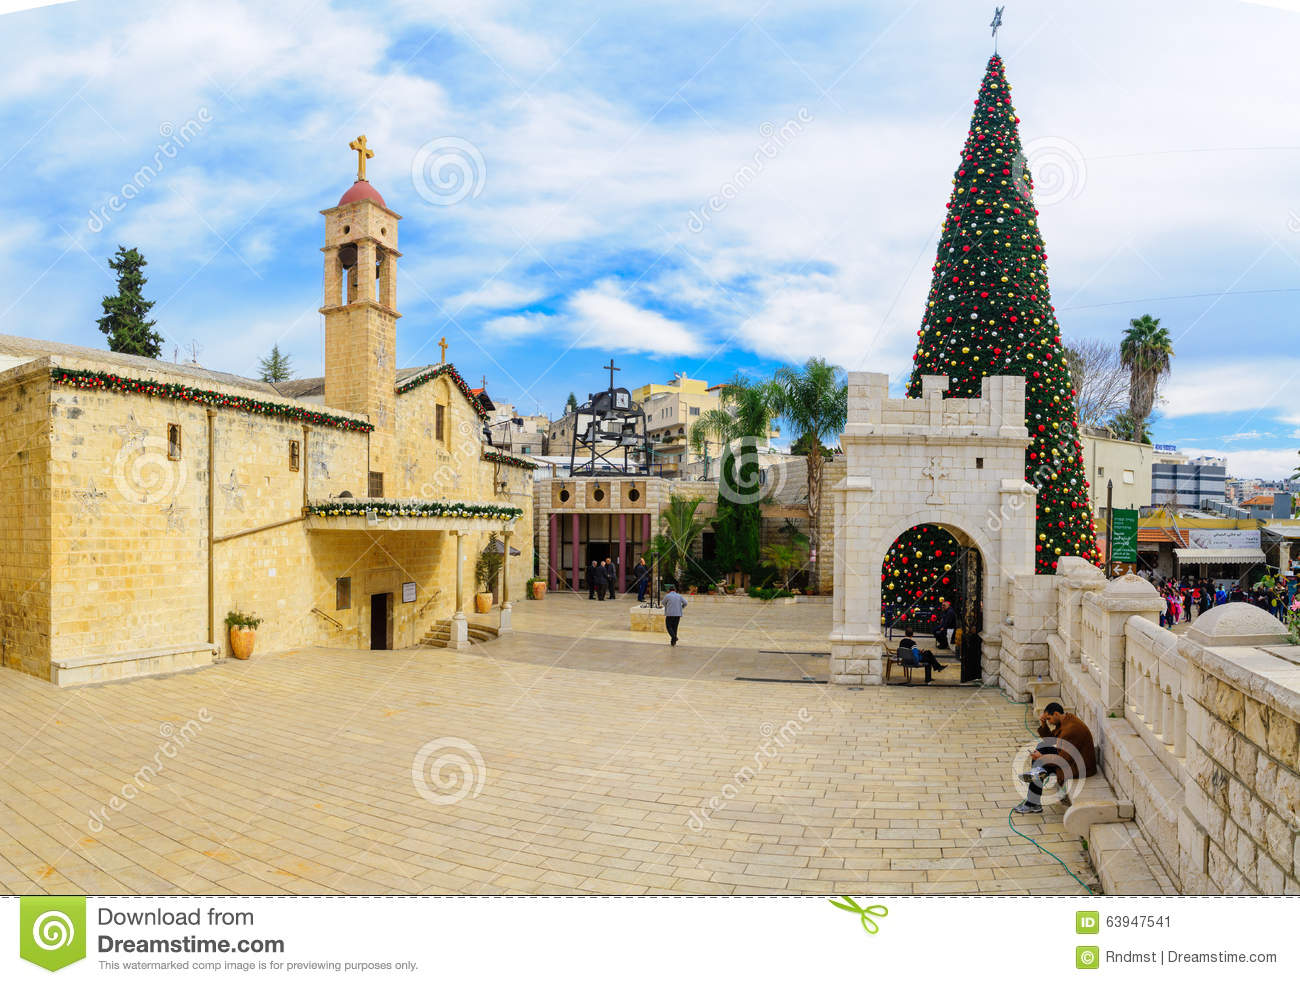 nazareth israel december 16 2015 scene of the greek orthodox church of the annunciation with a christmas tree locals and tourists in nazareth